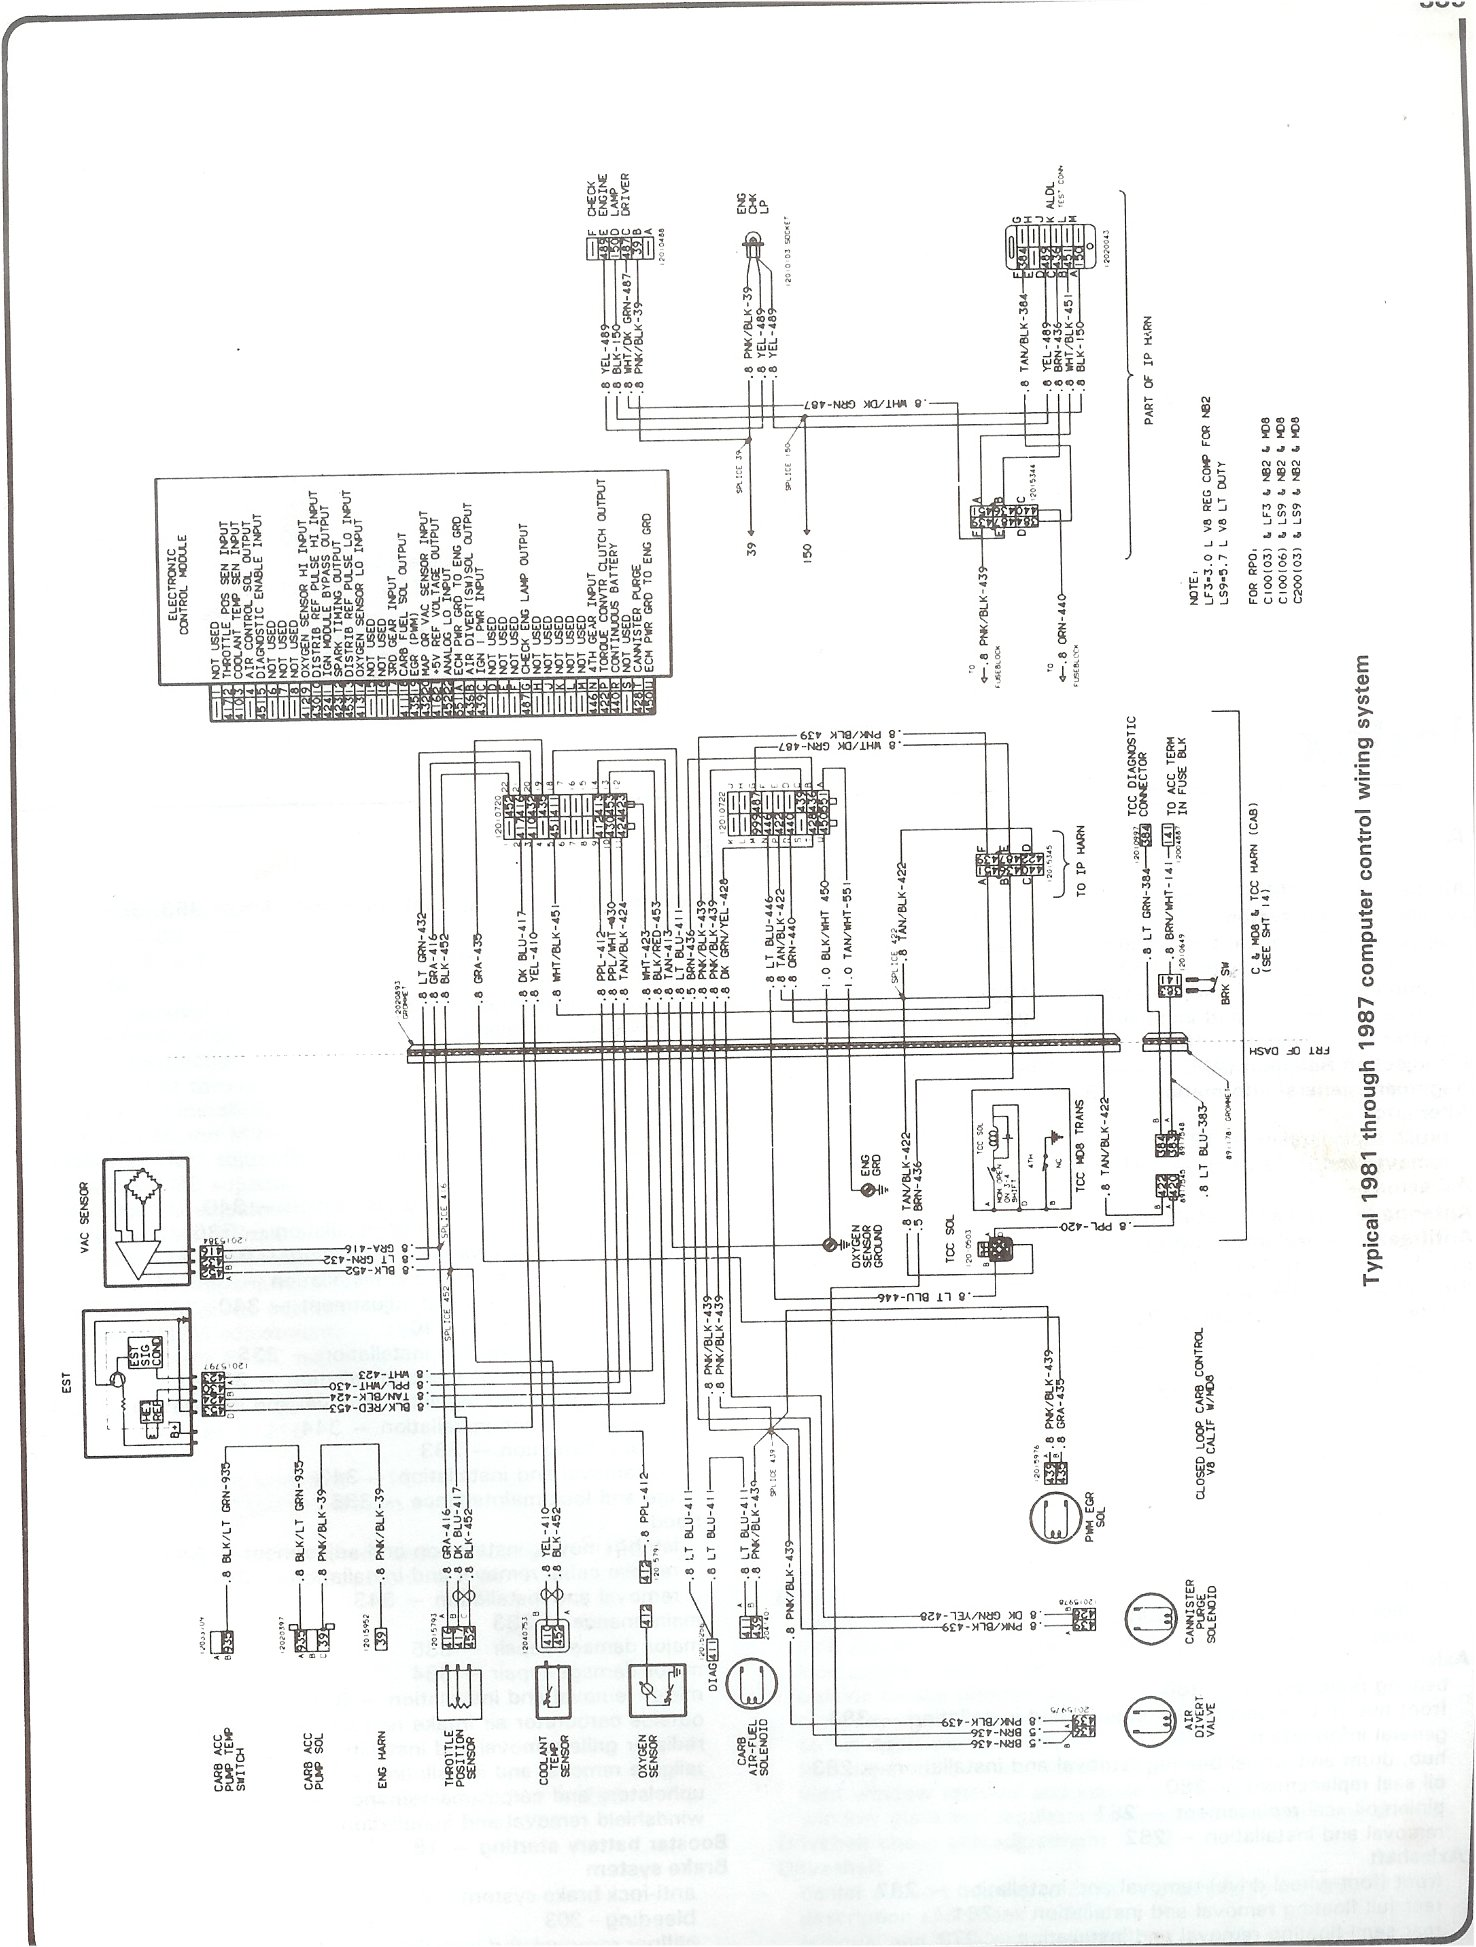 81 87_computer_control_wiring complete 73 87 wiring diagrams c10 wiring diagram at n-0.co